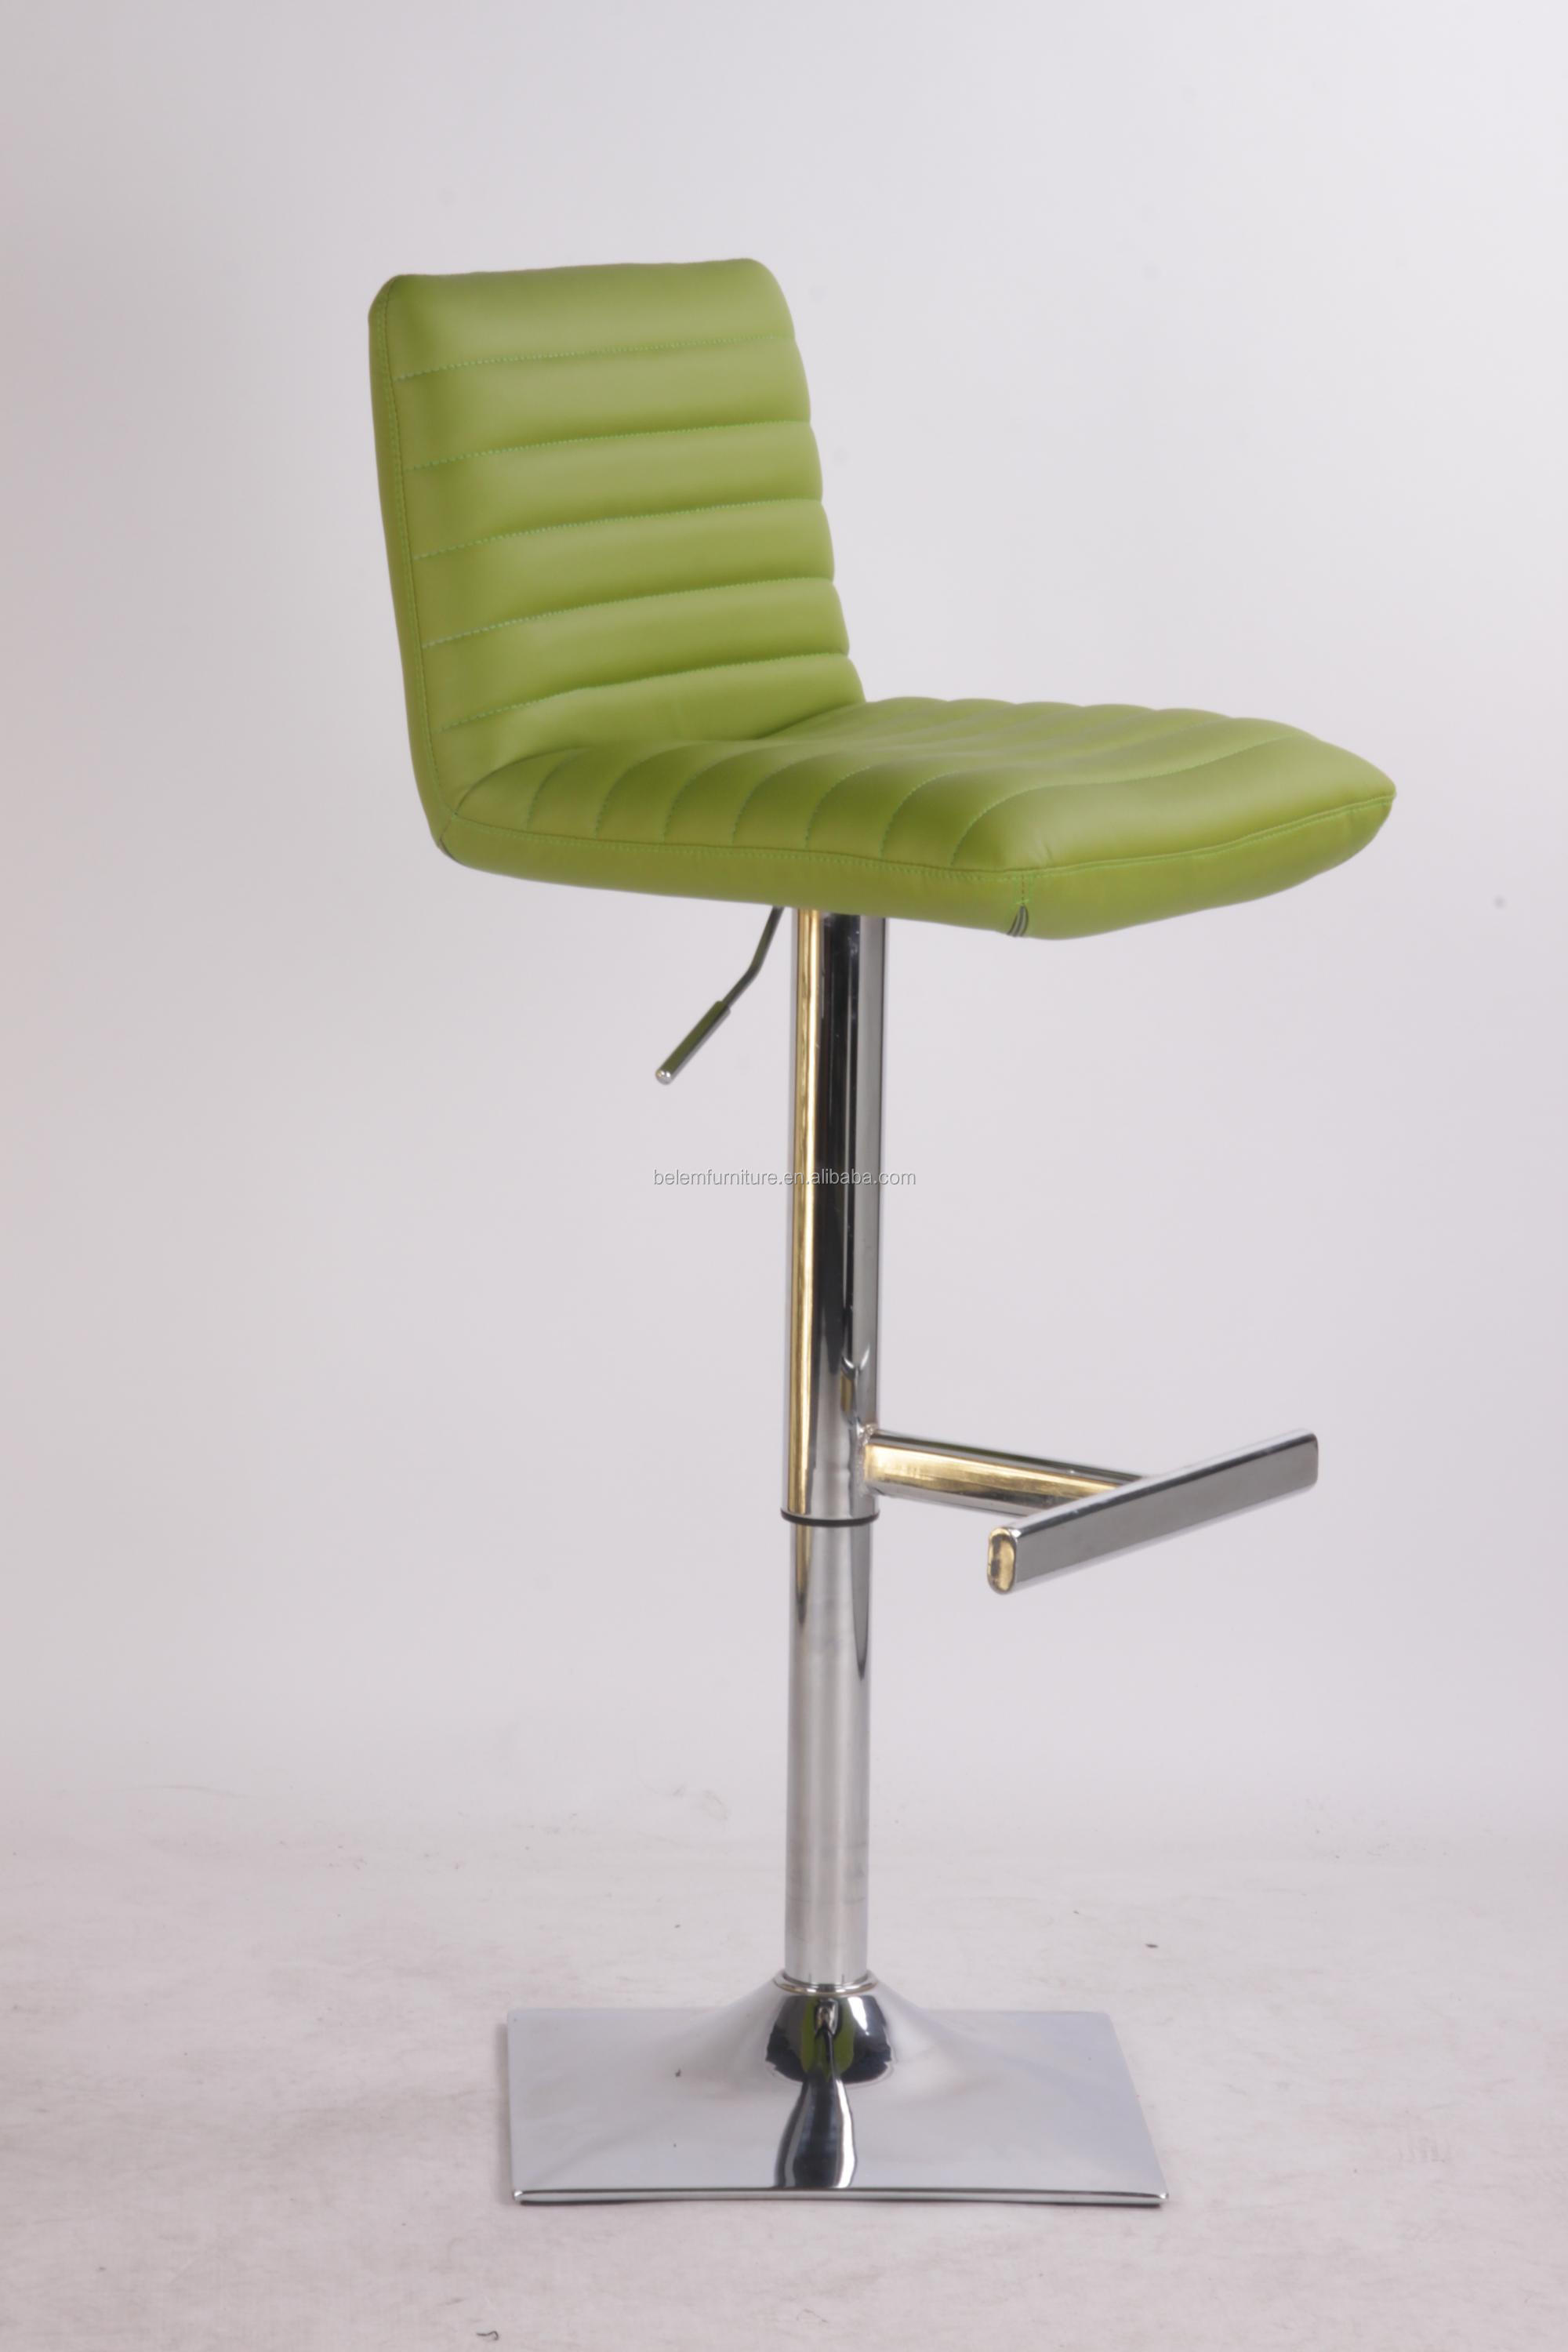 Cheap Uphostery PU barstool with Chrome Gasflit and Square Base BL0130